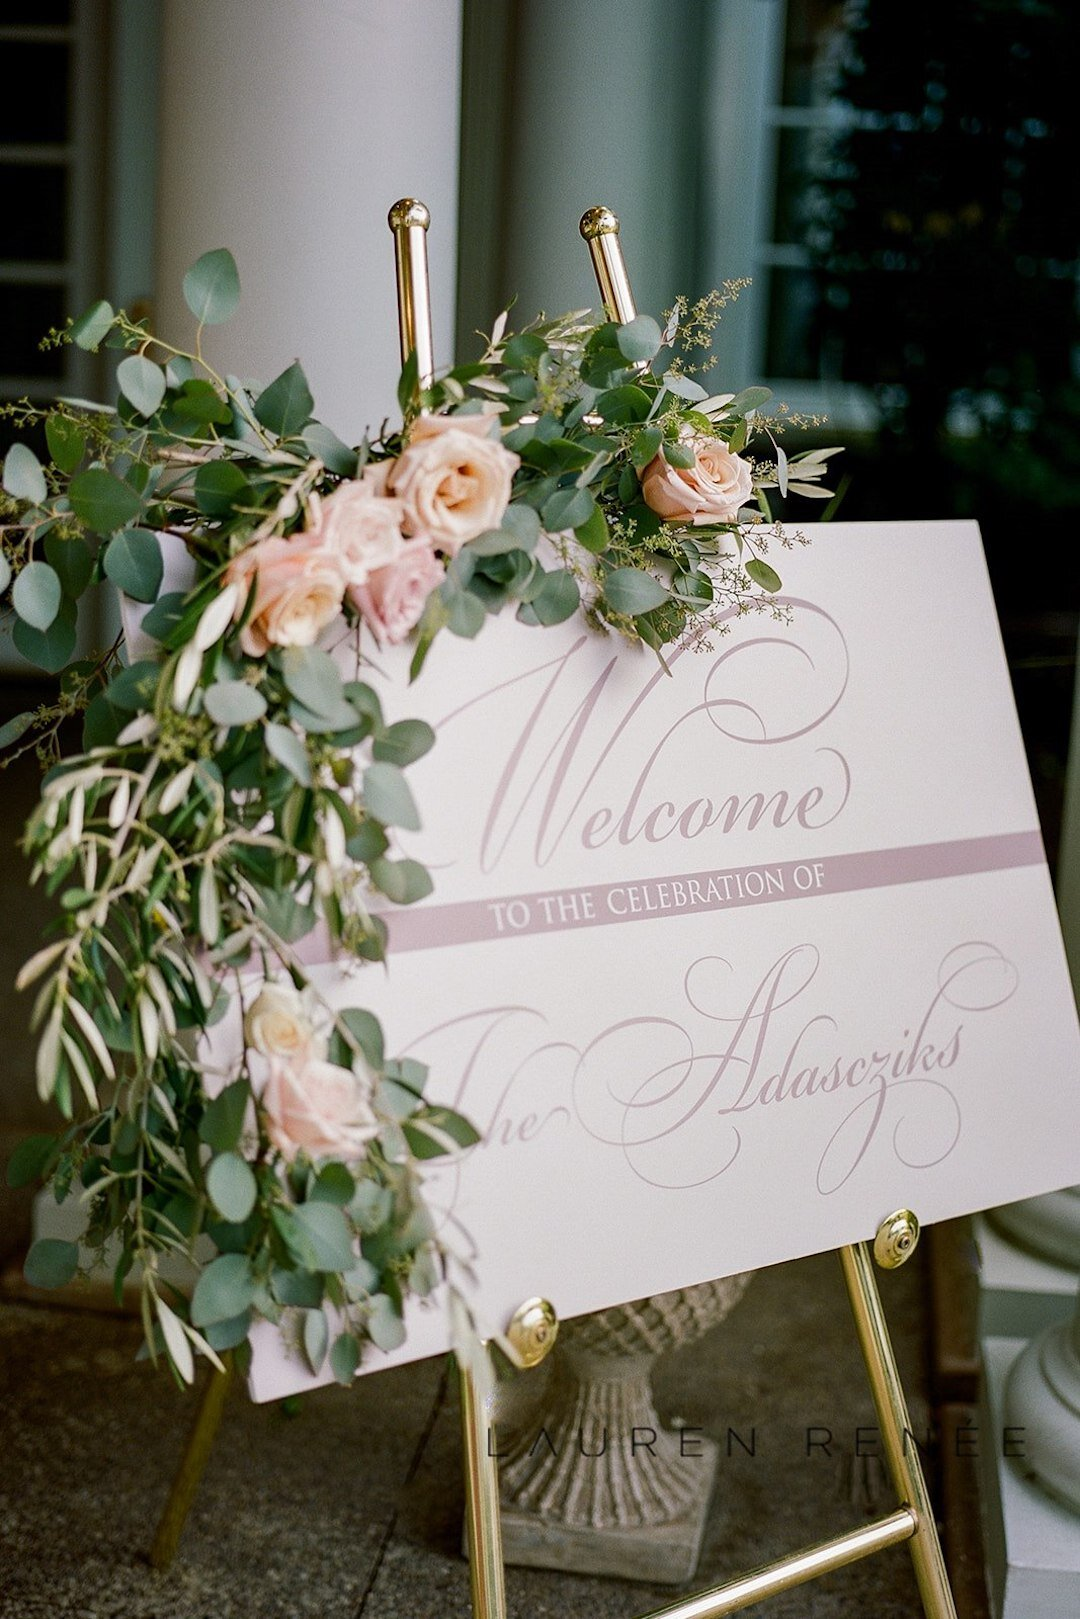 Custom floral welcome sign: Romantic Blush Wedding at the Pittsburgh Field Club planned by Exhale Events. See more at exhale-events.com!